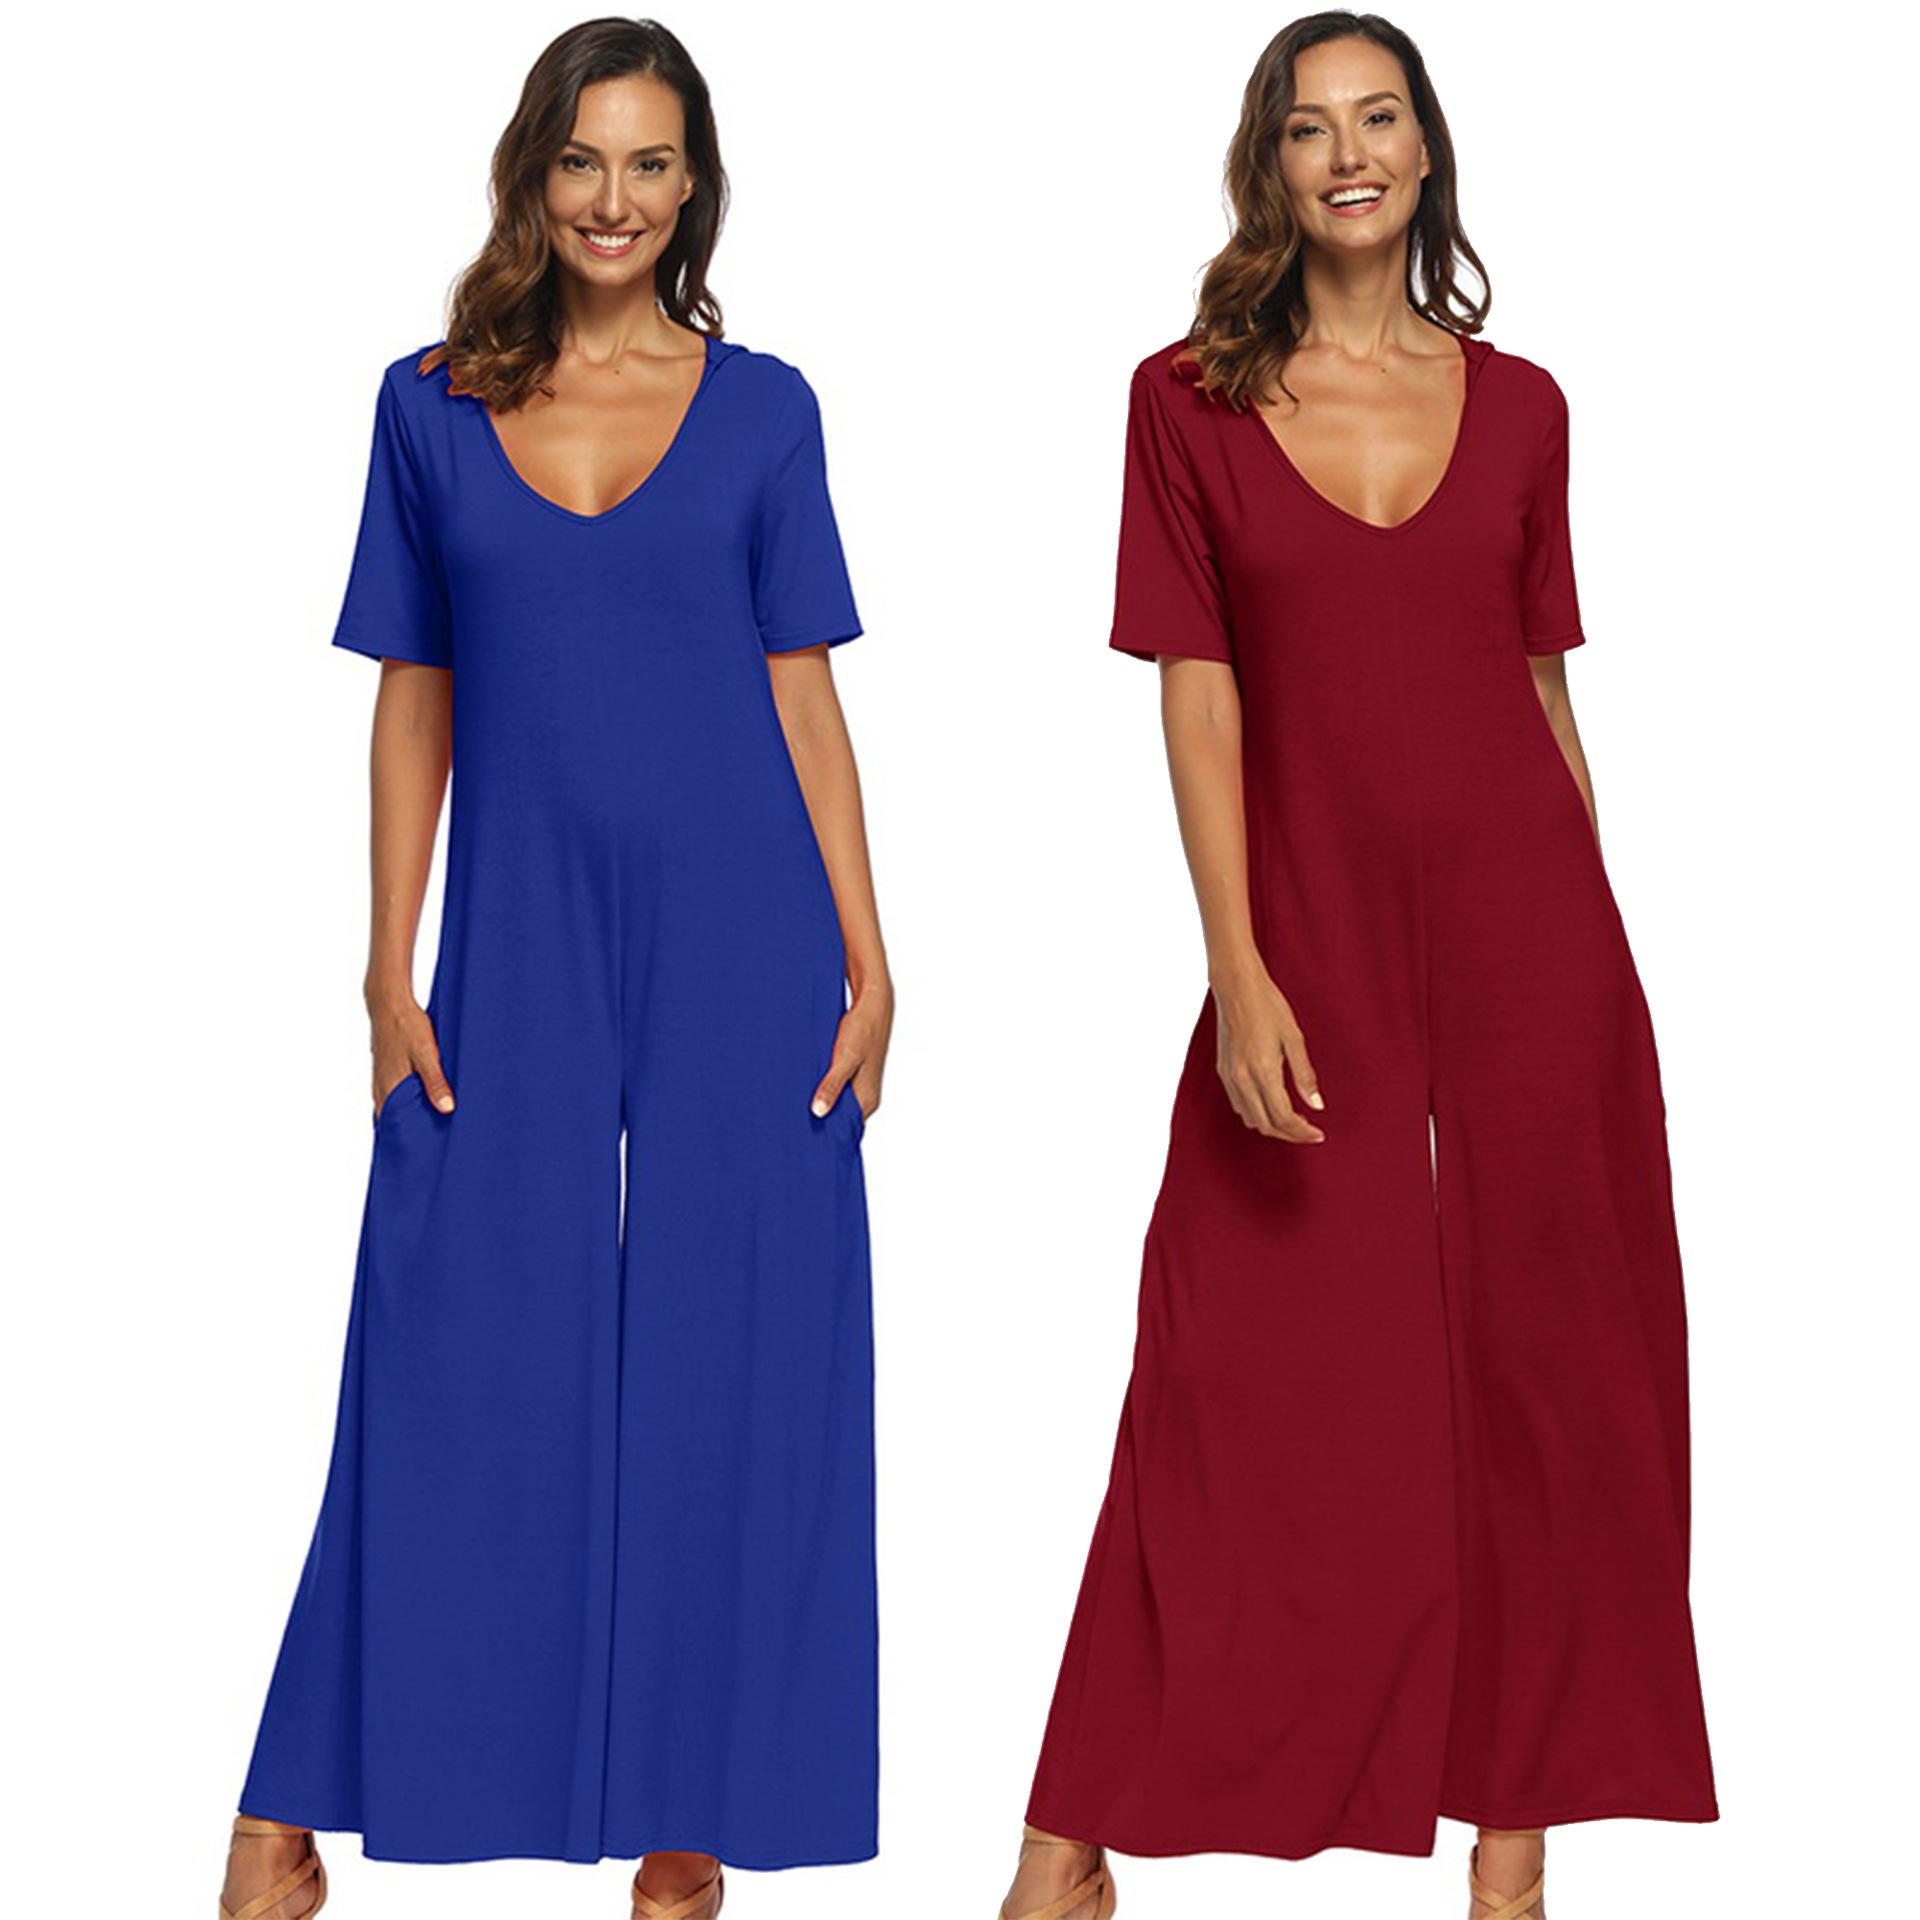 2145ef7435c7 A9006 Romper Women Jumpsuit Summer 2019 Graceful Ladies Office Wear Half  Sleeve Wide Leg Playsuit Tracksuit Long Pants Online with  21.8 Piece on  Dujotree s ...